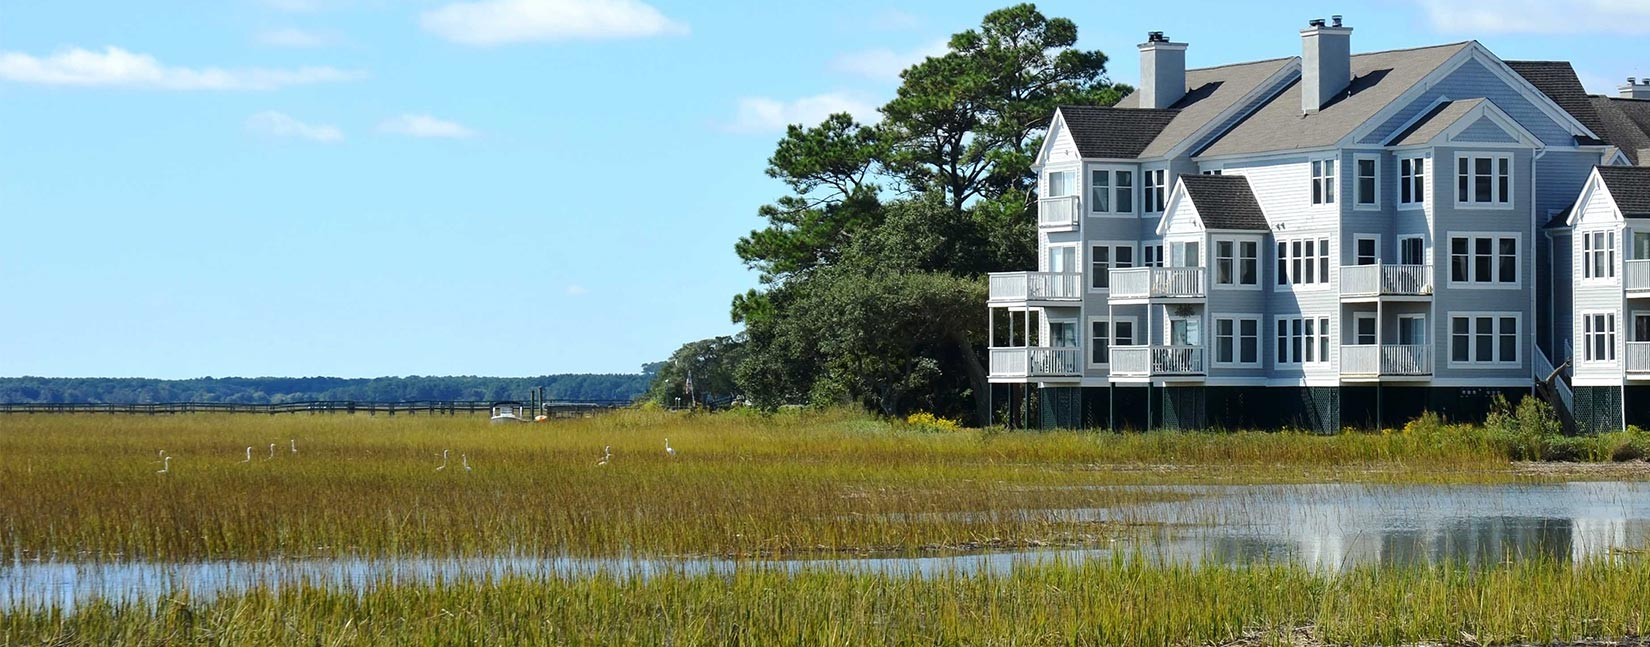 Murrells Inlet Sc Homes For Sale